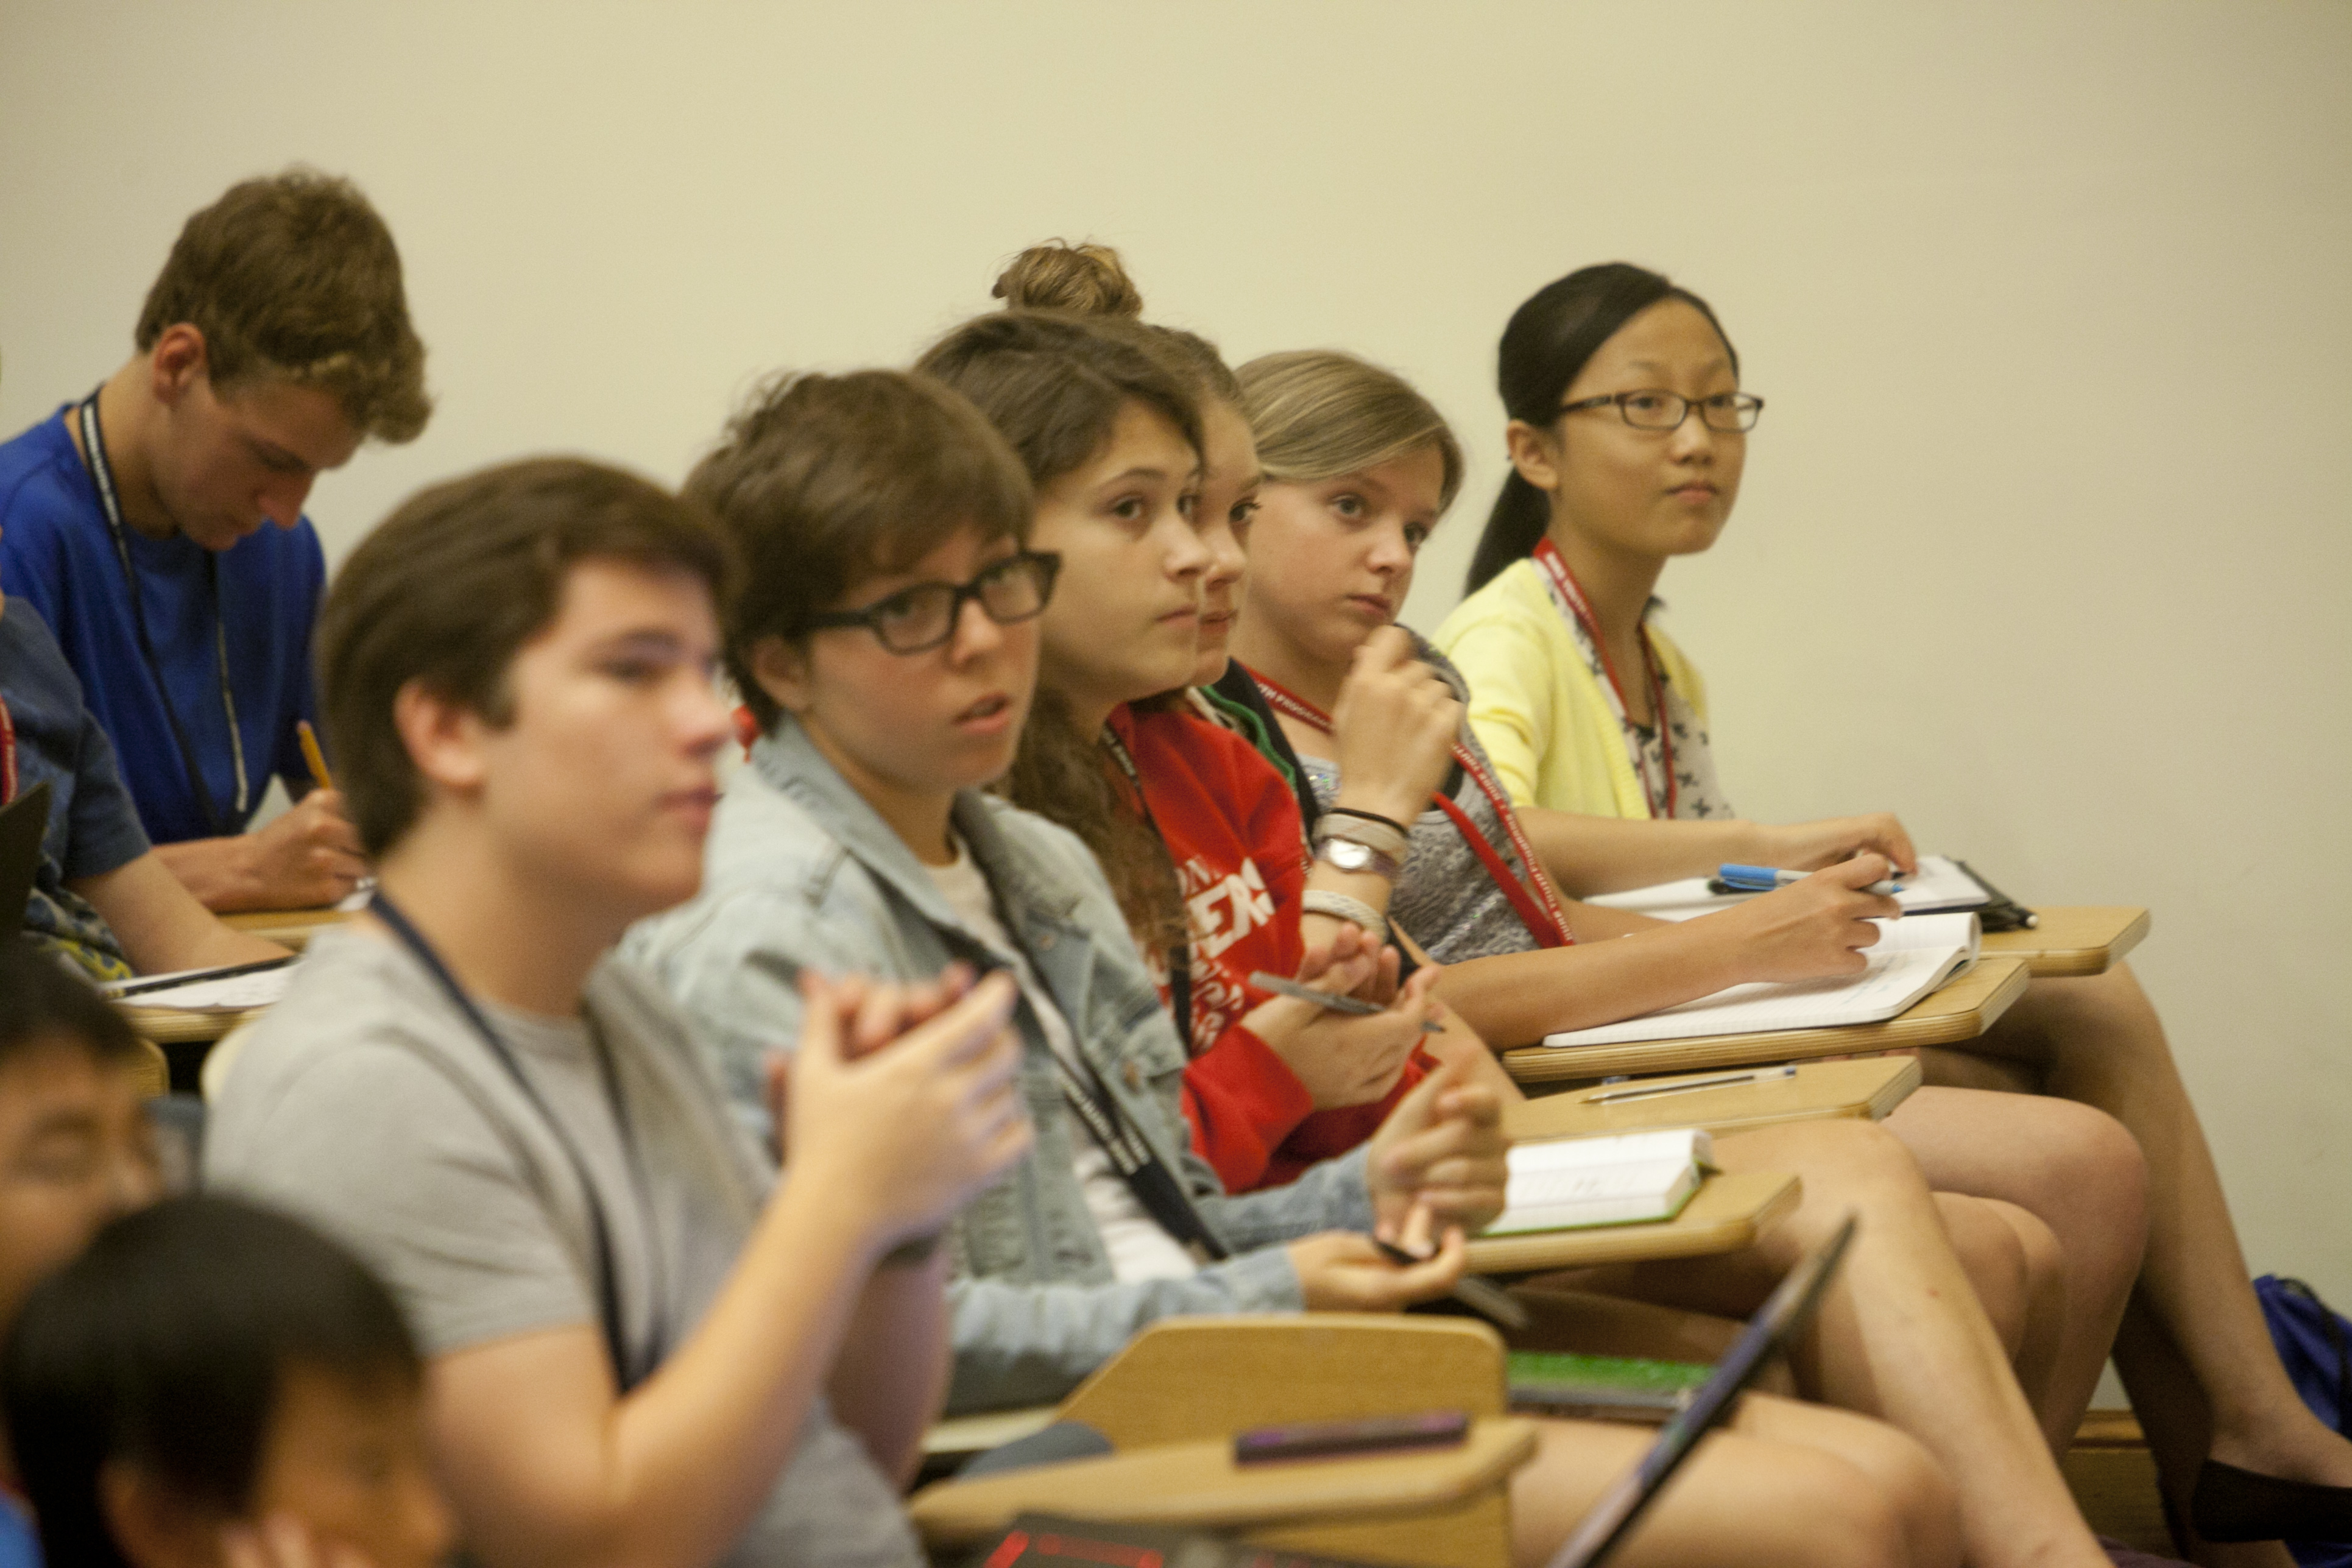 Summer Program - Debate | Duke University Youth Programs: Young Writers' Camp